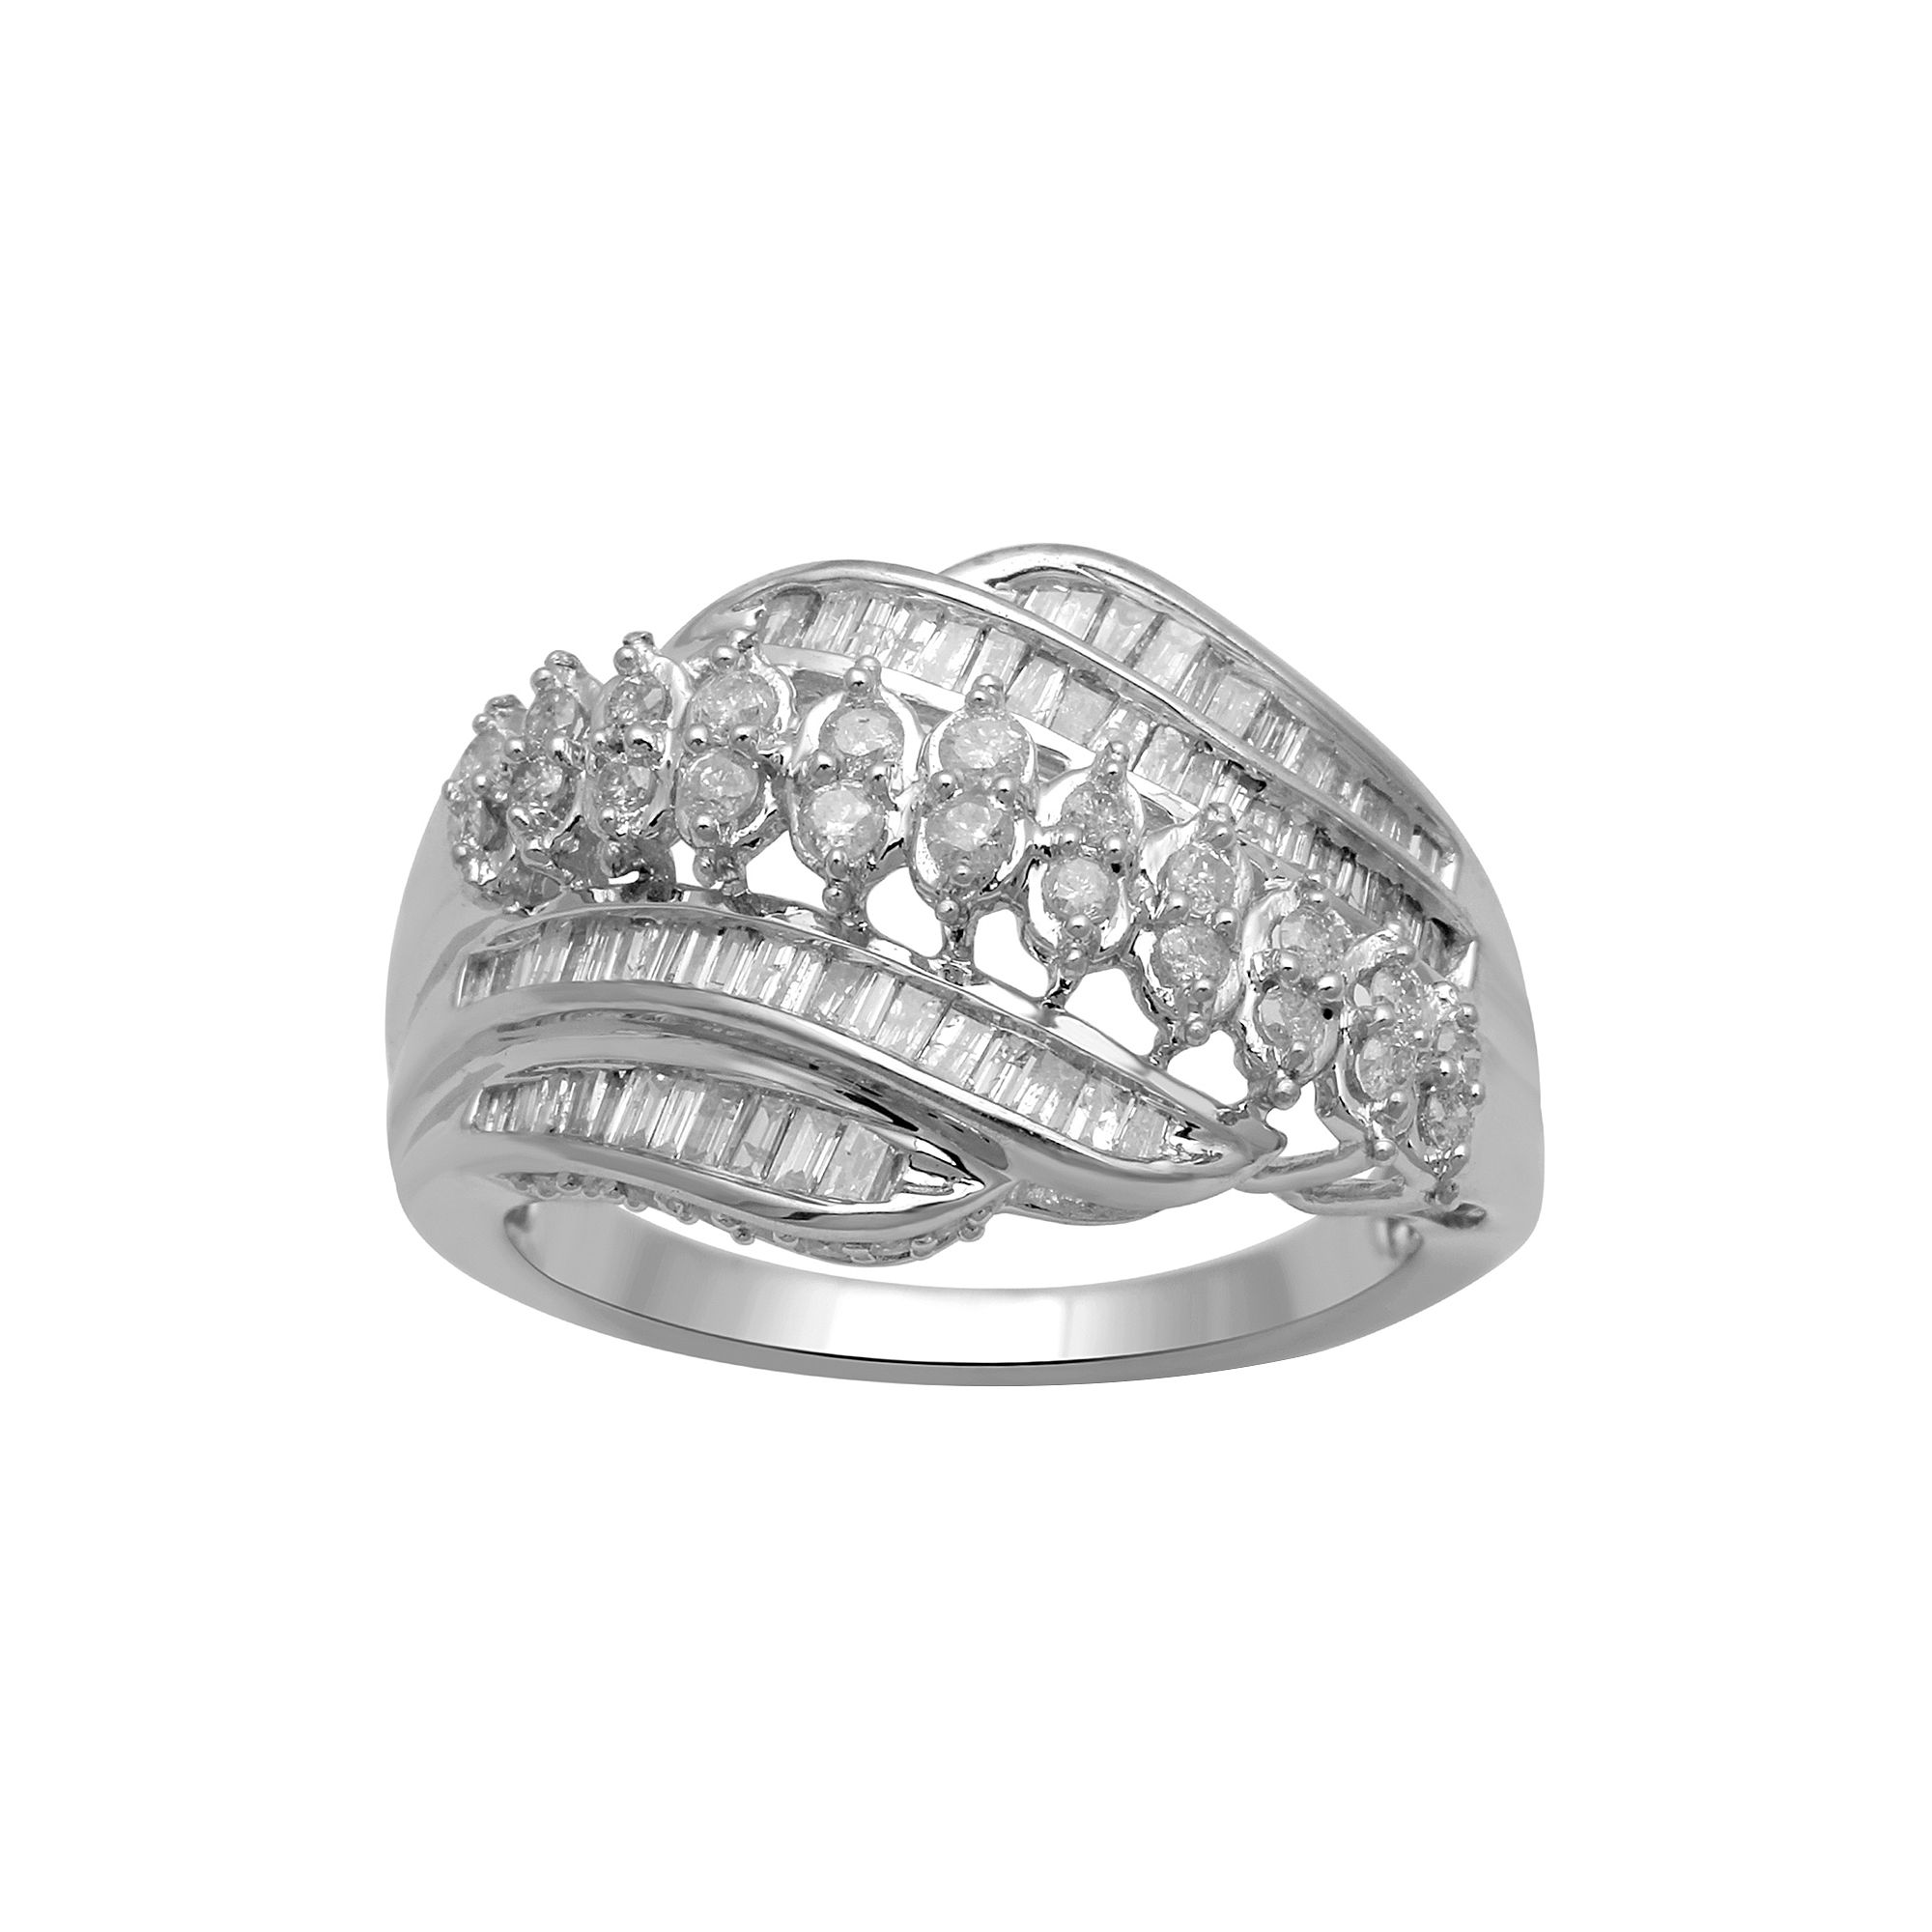 1 CT. T.W. Diamond 10K White Gold Cocktail Ring